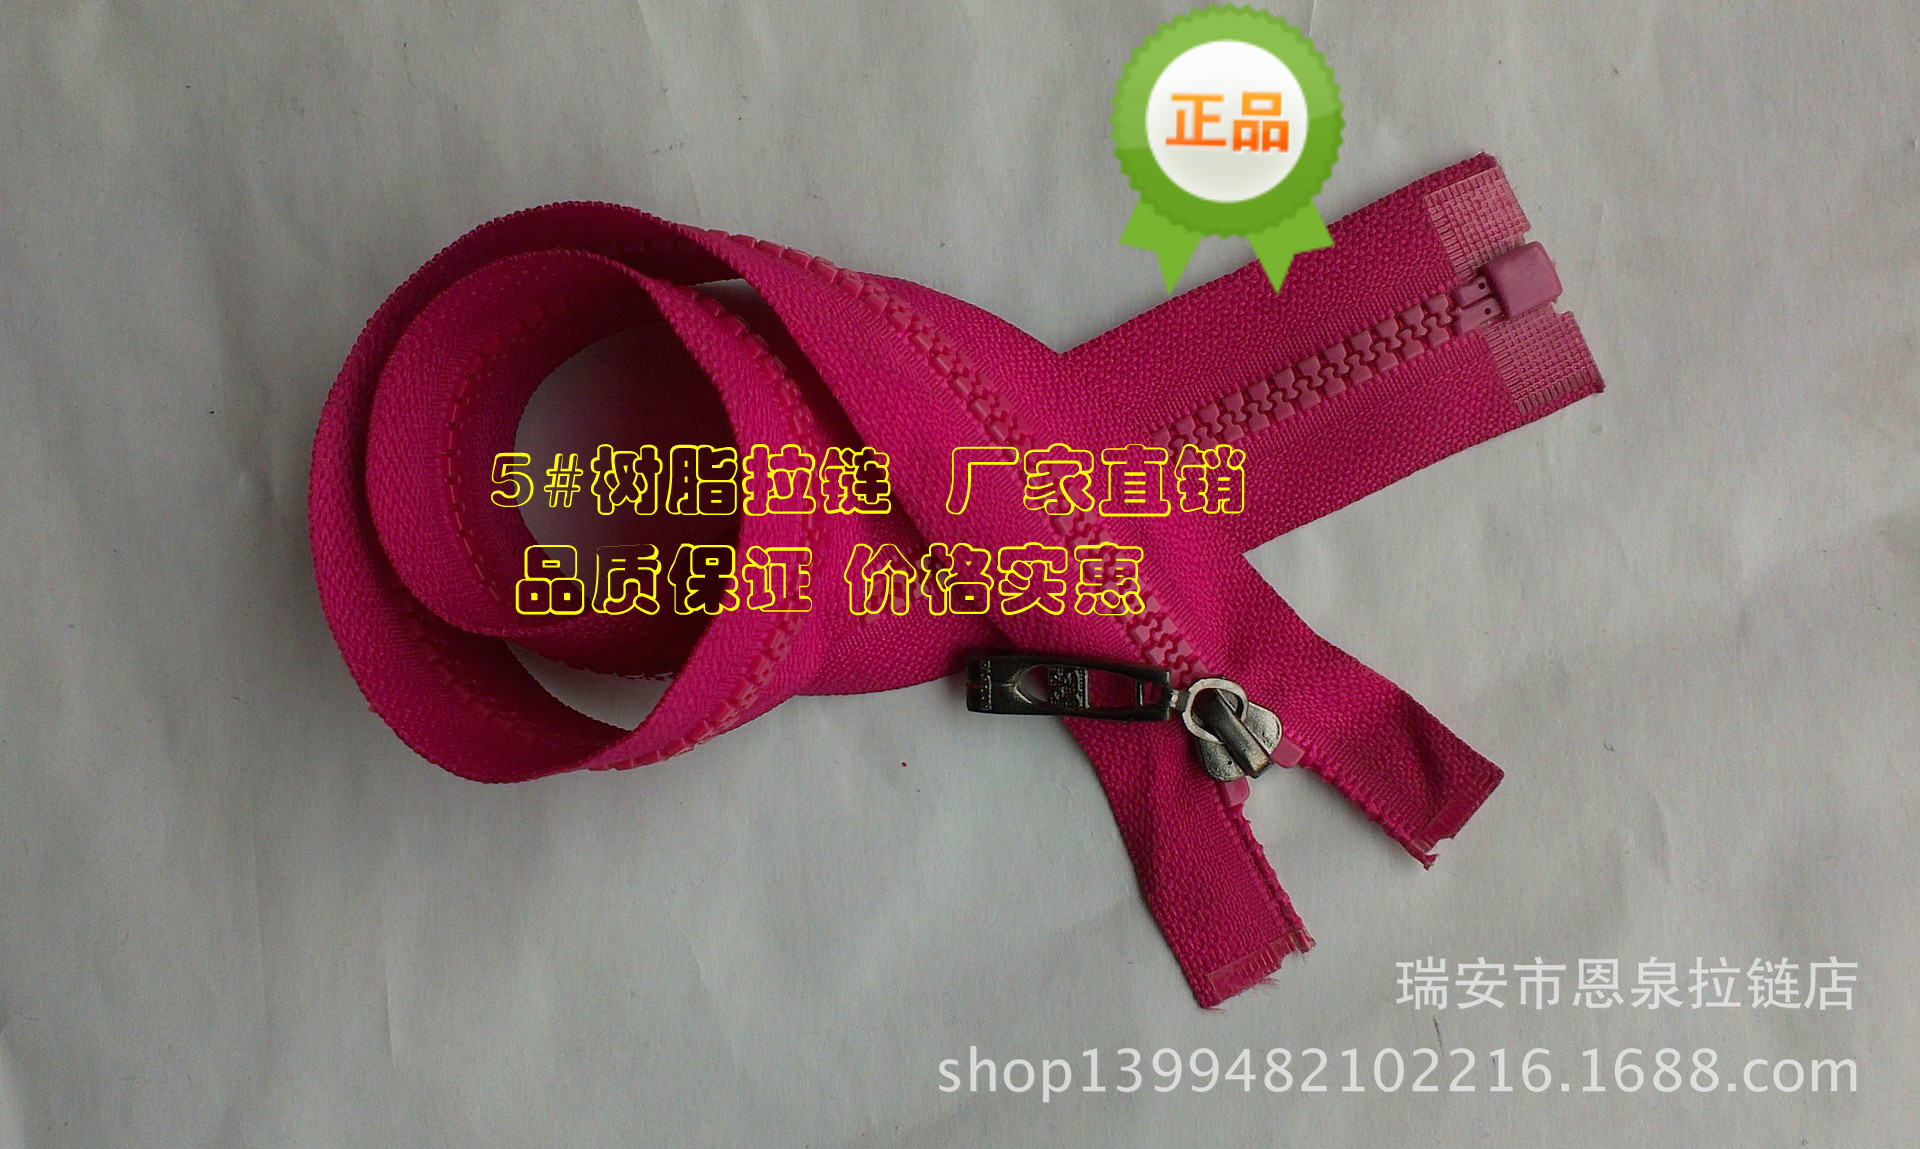 Dây kéo nhựa   Factory direct high-end professional custom 5 # resin zipper opening garment accessor